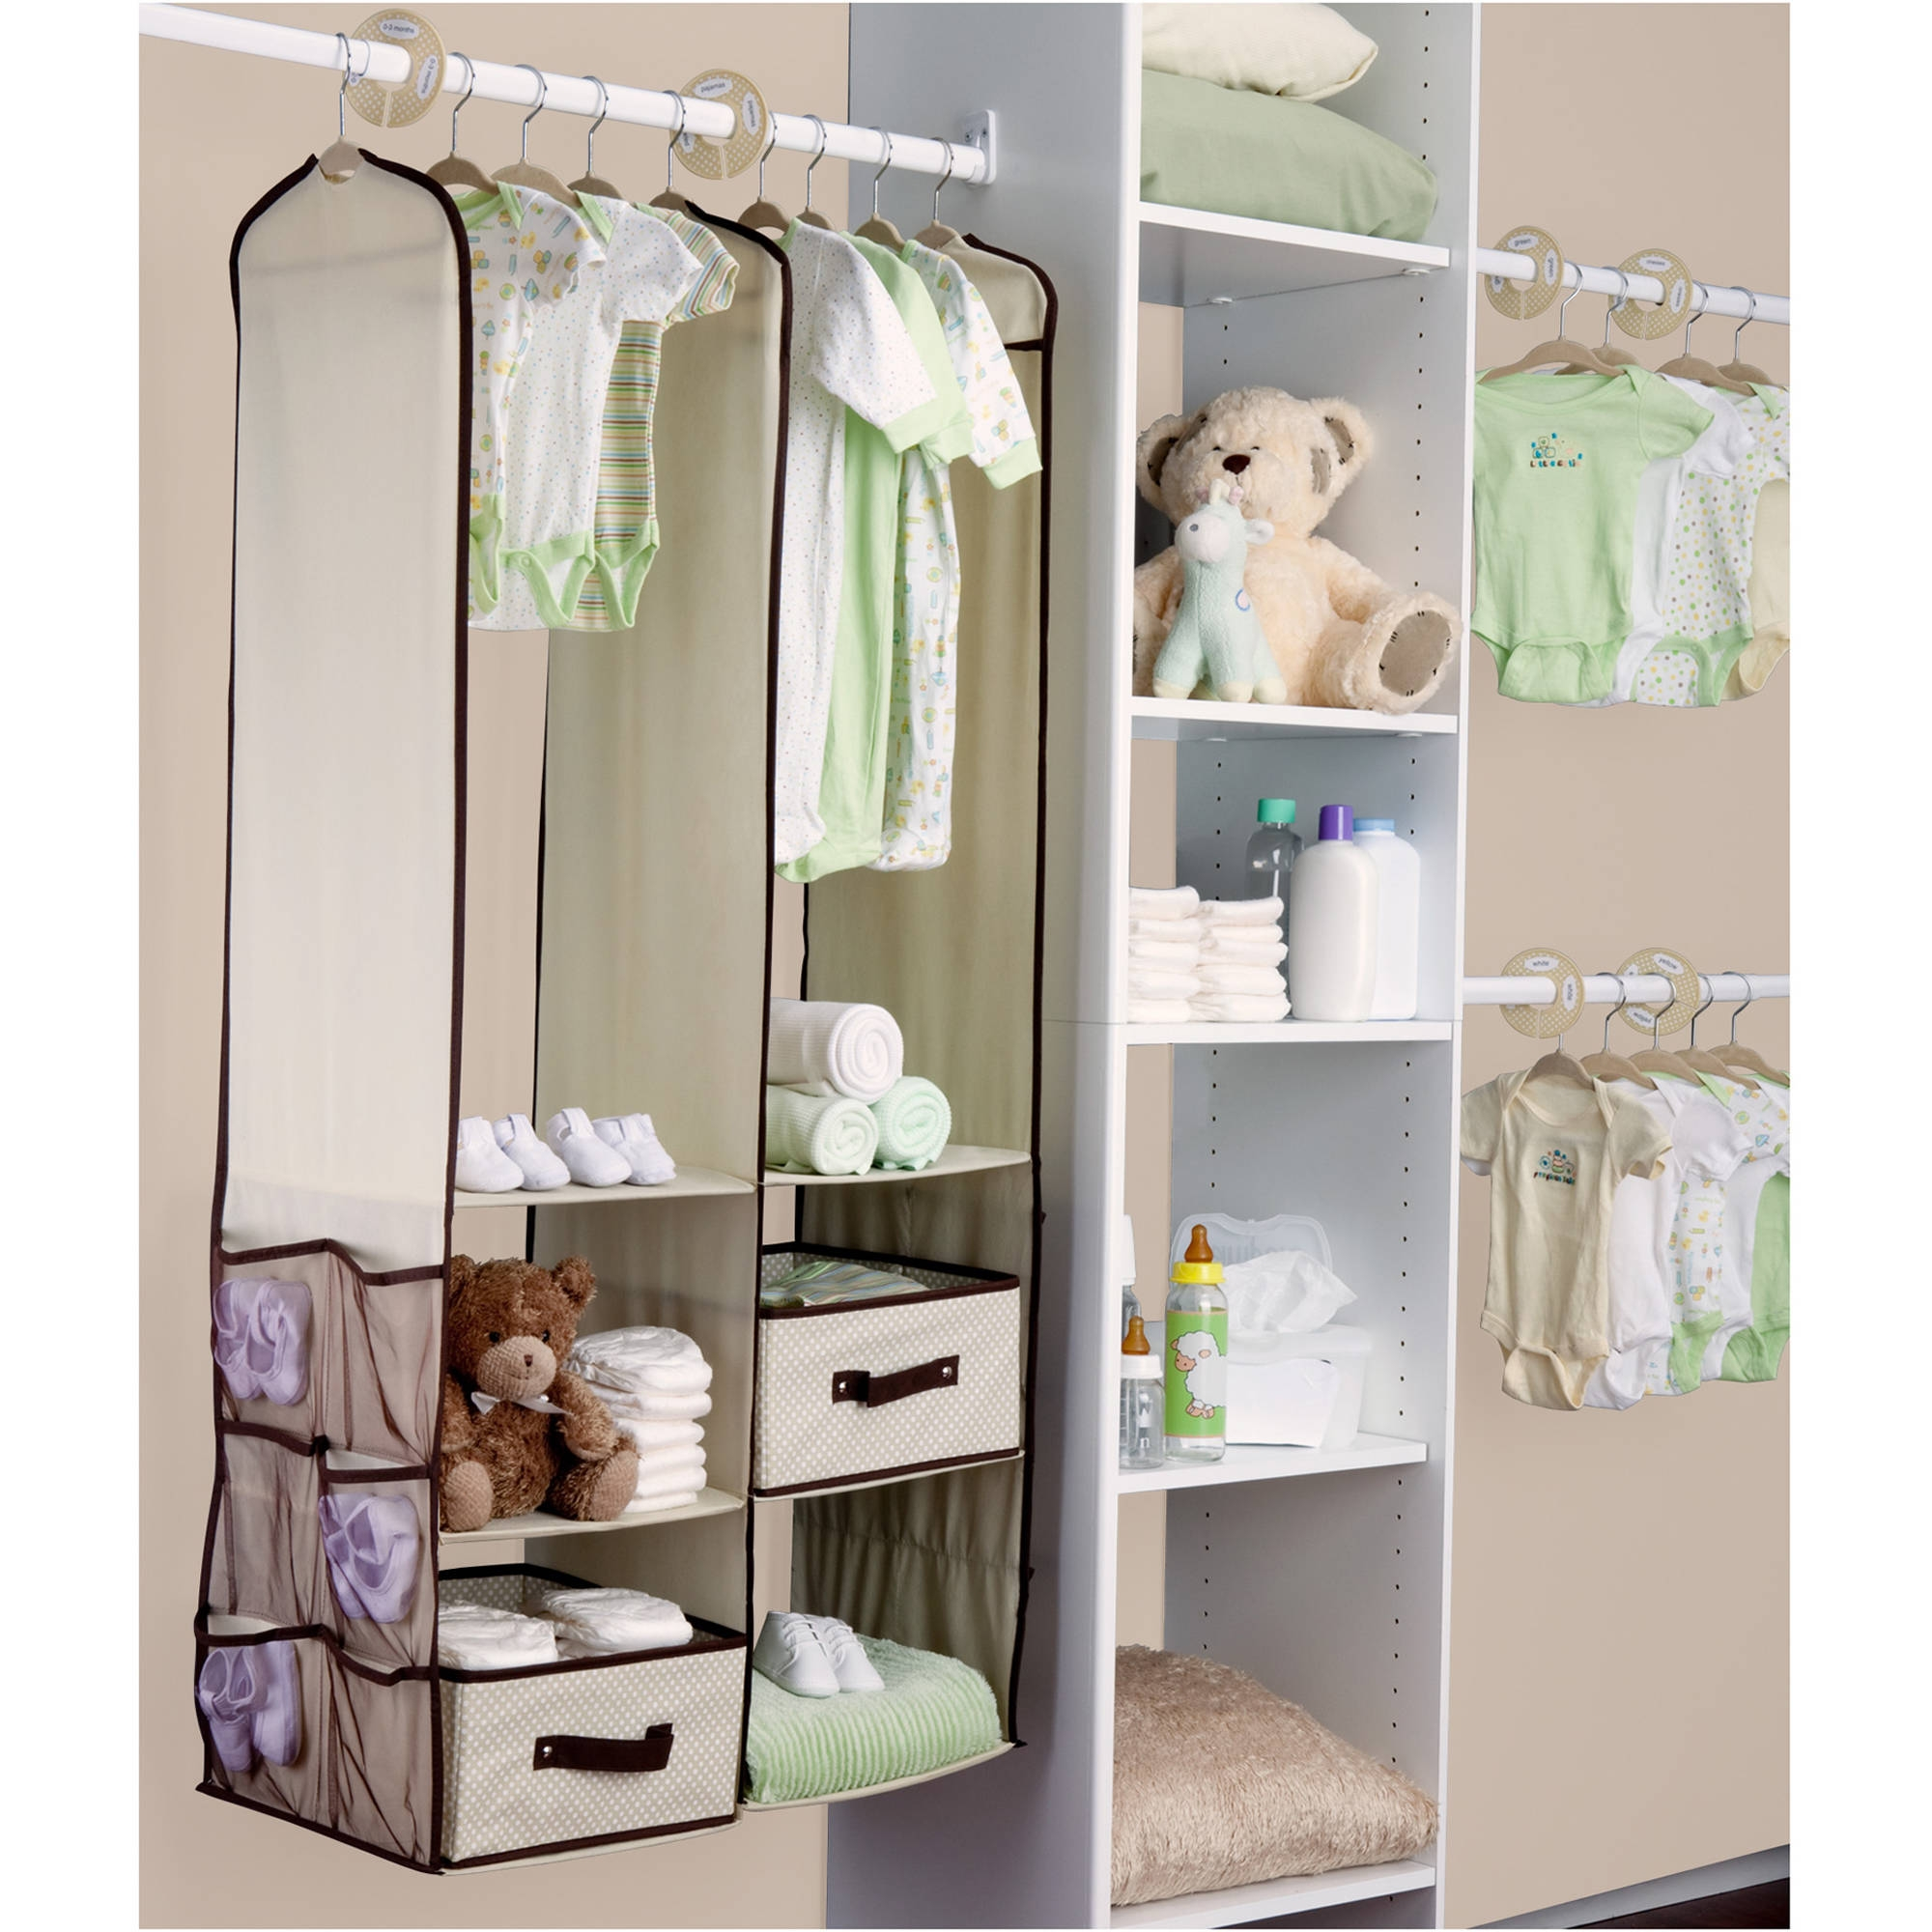 Dex Ba Playard Organizer Gray Walmart Throughout Wardrobe For Baby Clothes (View 8 of 25)